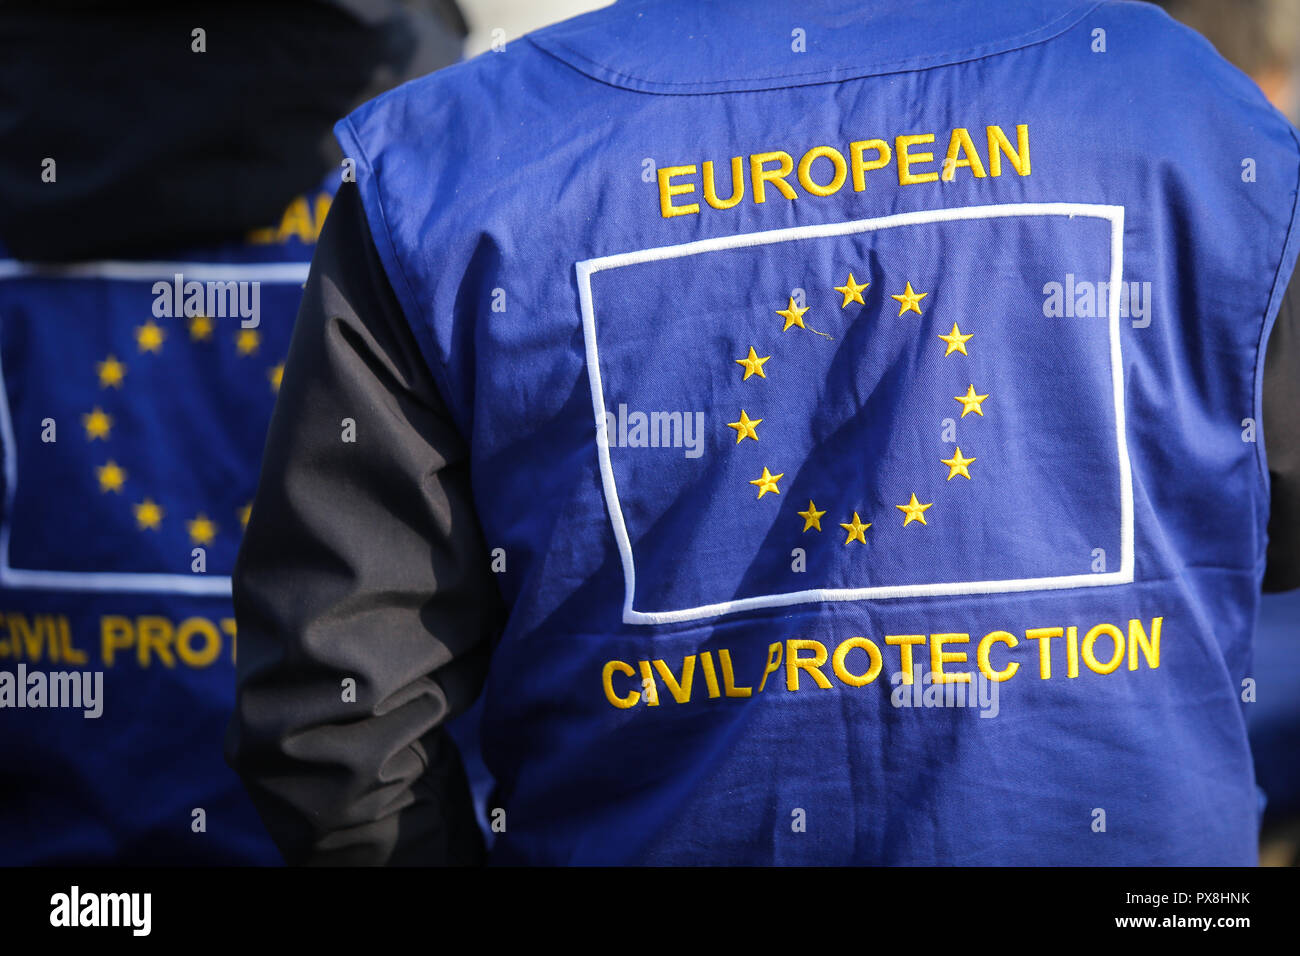 European civil protection and humanitarian aid operations uniform on a man - Stock Image